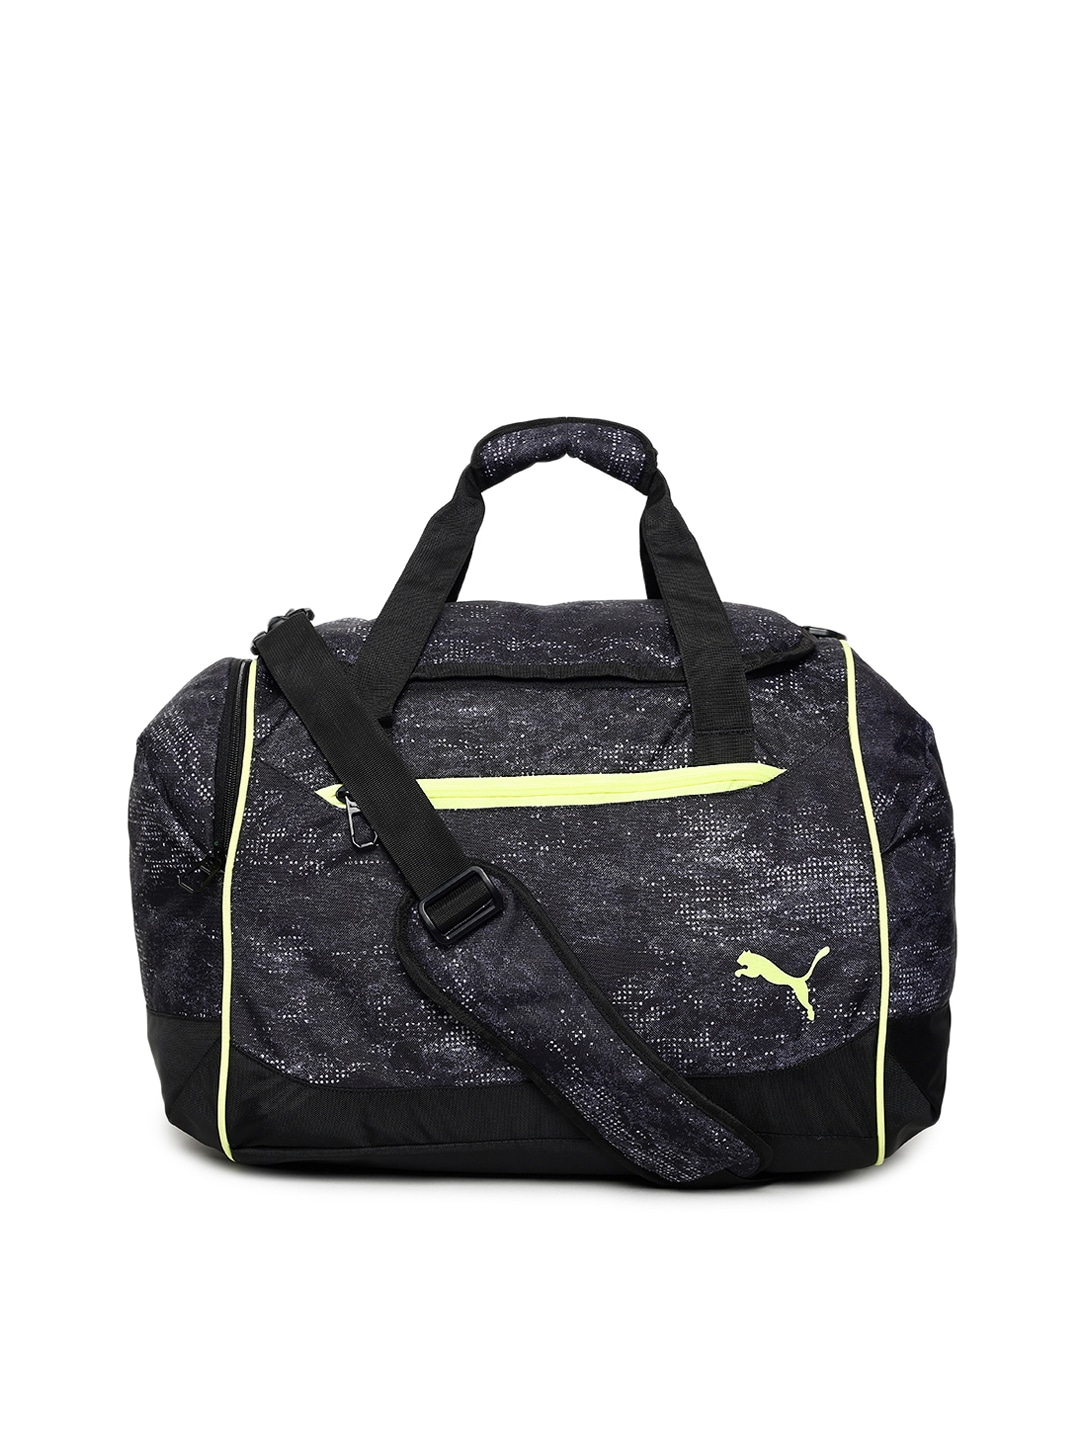 21e81757756d Puma Bag - Buy Puma Bags Online in India